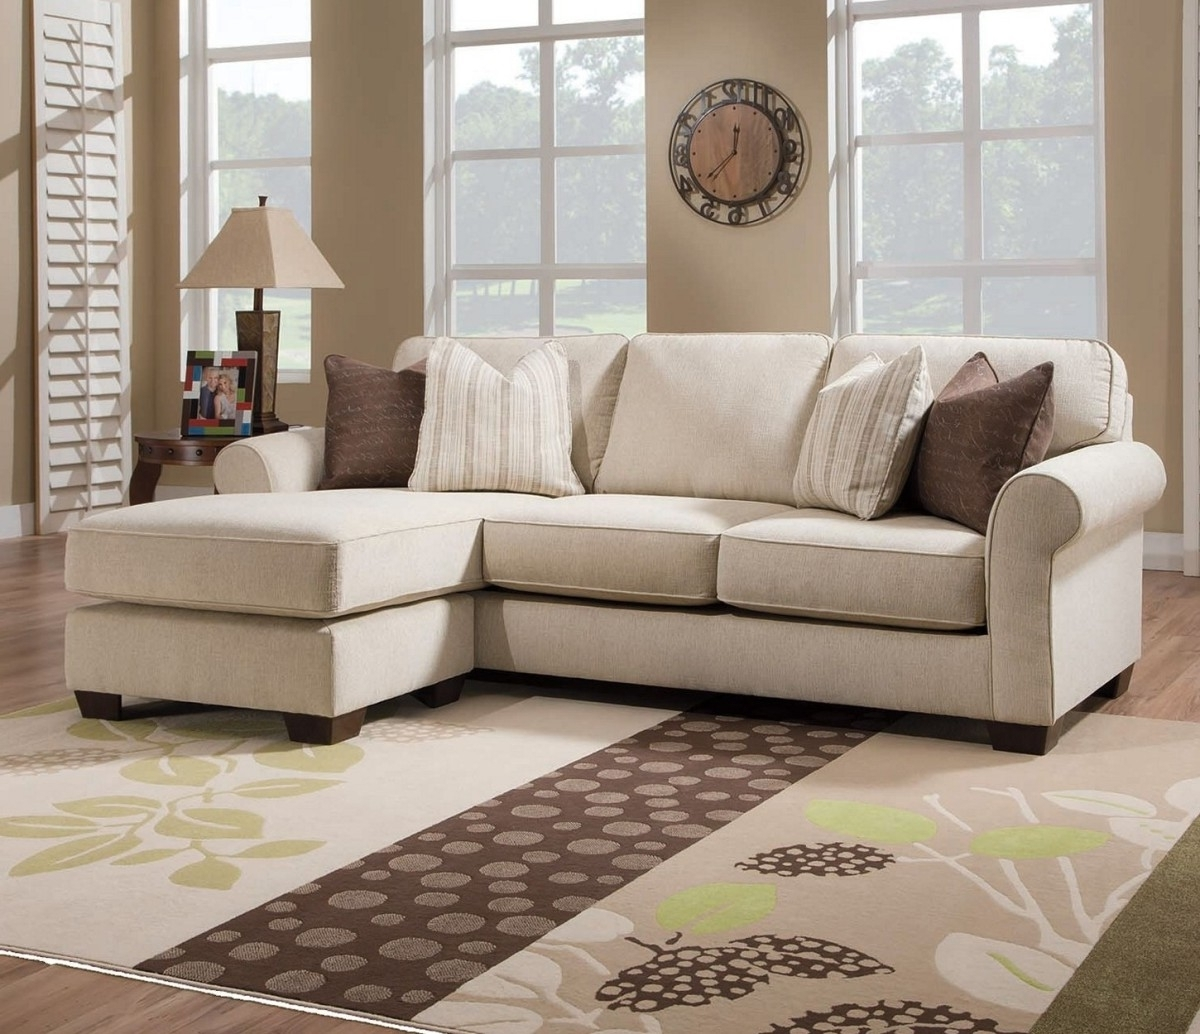 Most Current Sofa : High Back Sofa Inexpensive Sectional Sofas For Small Spaces Within Narrow Spaces Sectional Sofas (View 6 of 20)